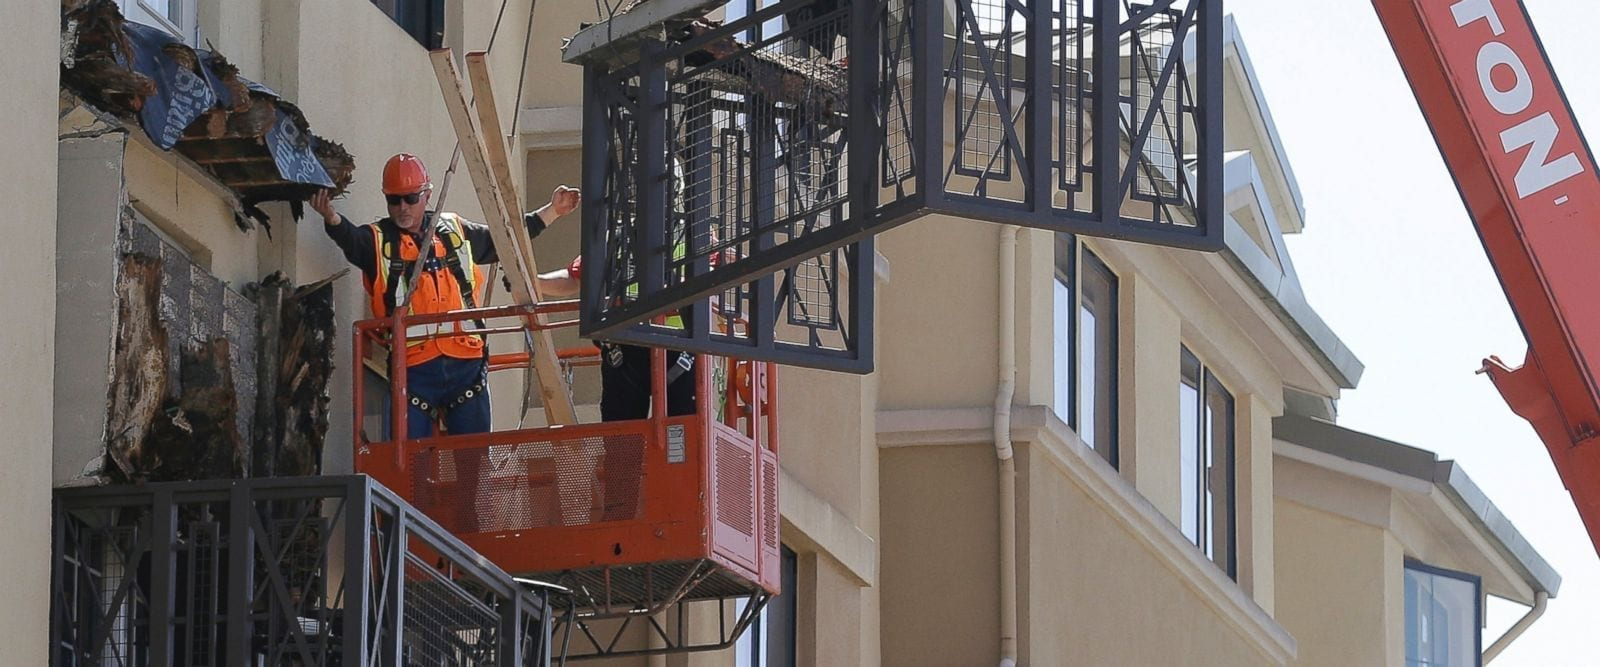 Image of the Library Gardens Apartment Complex Balcony Collapse